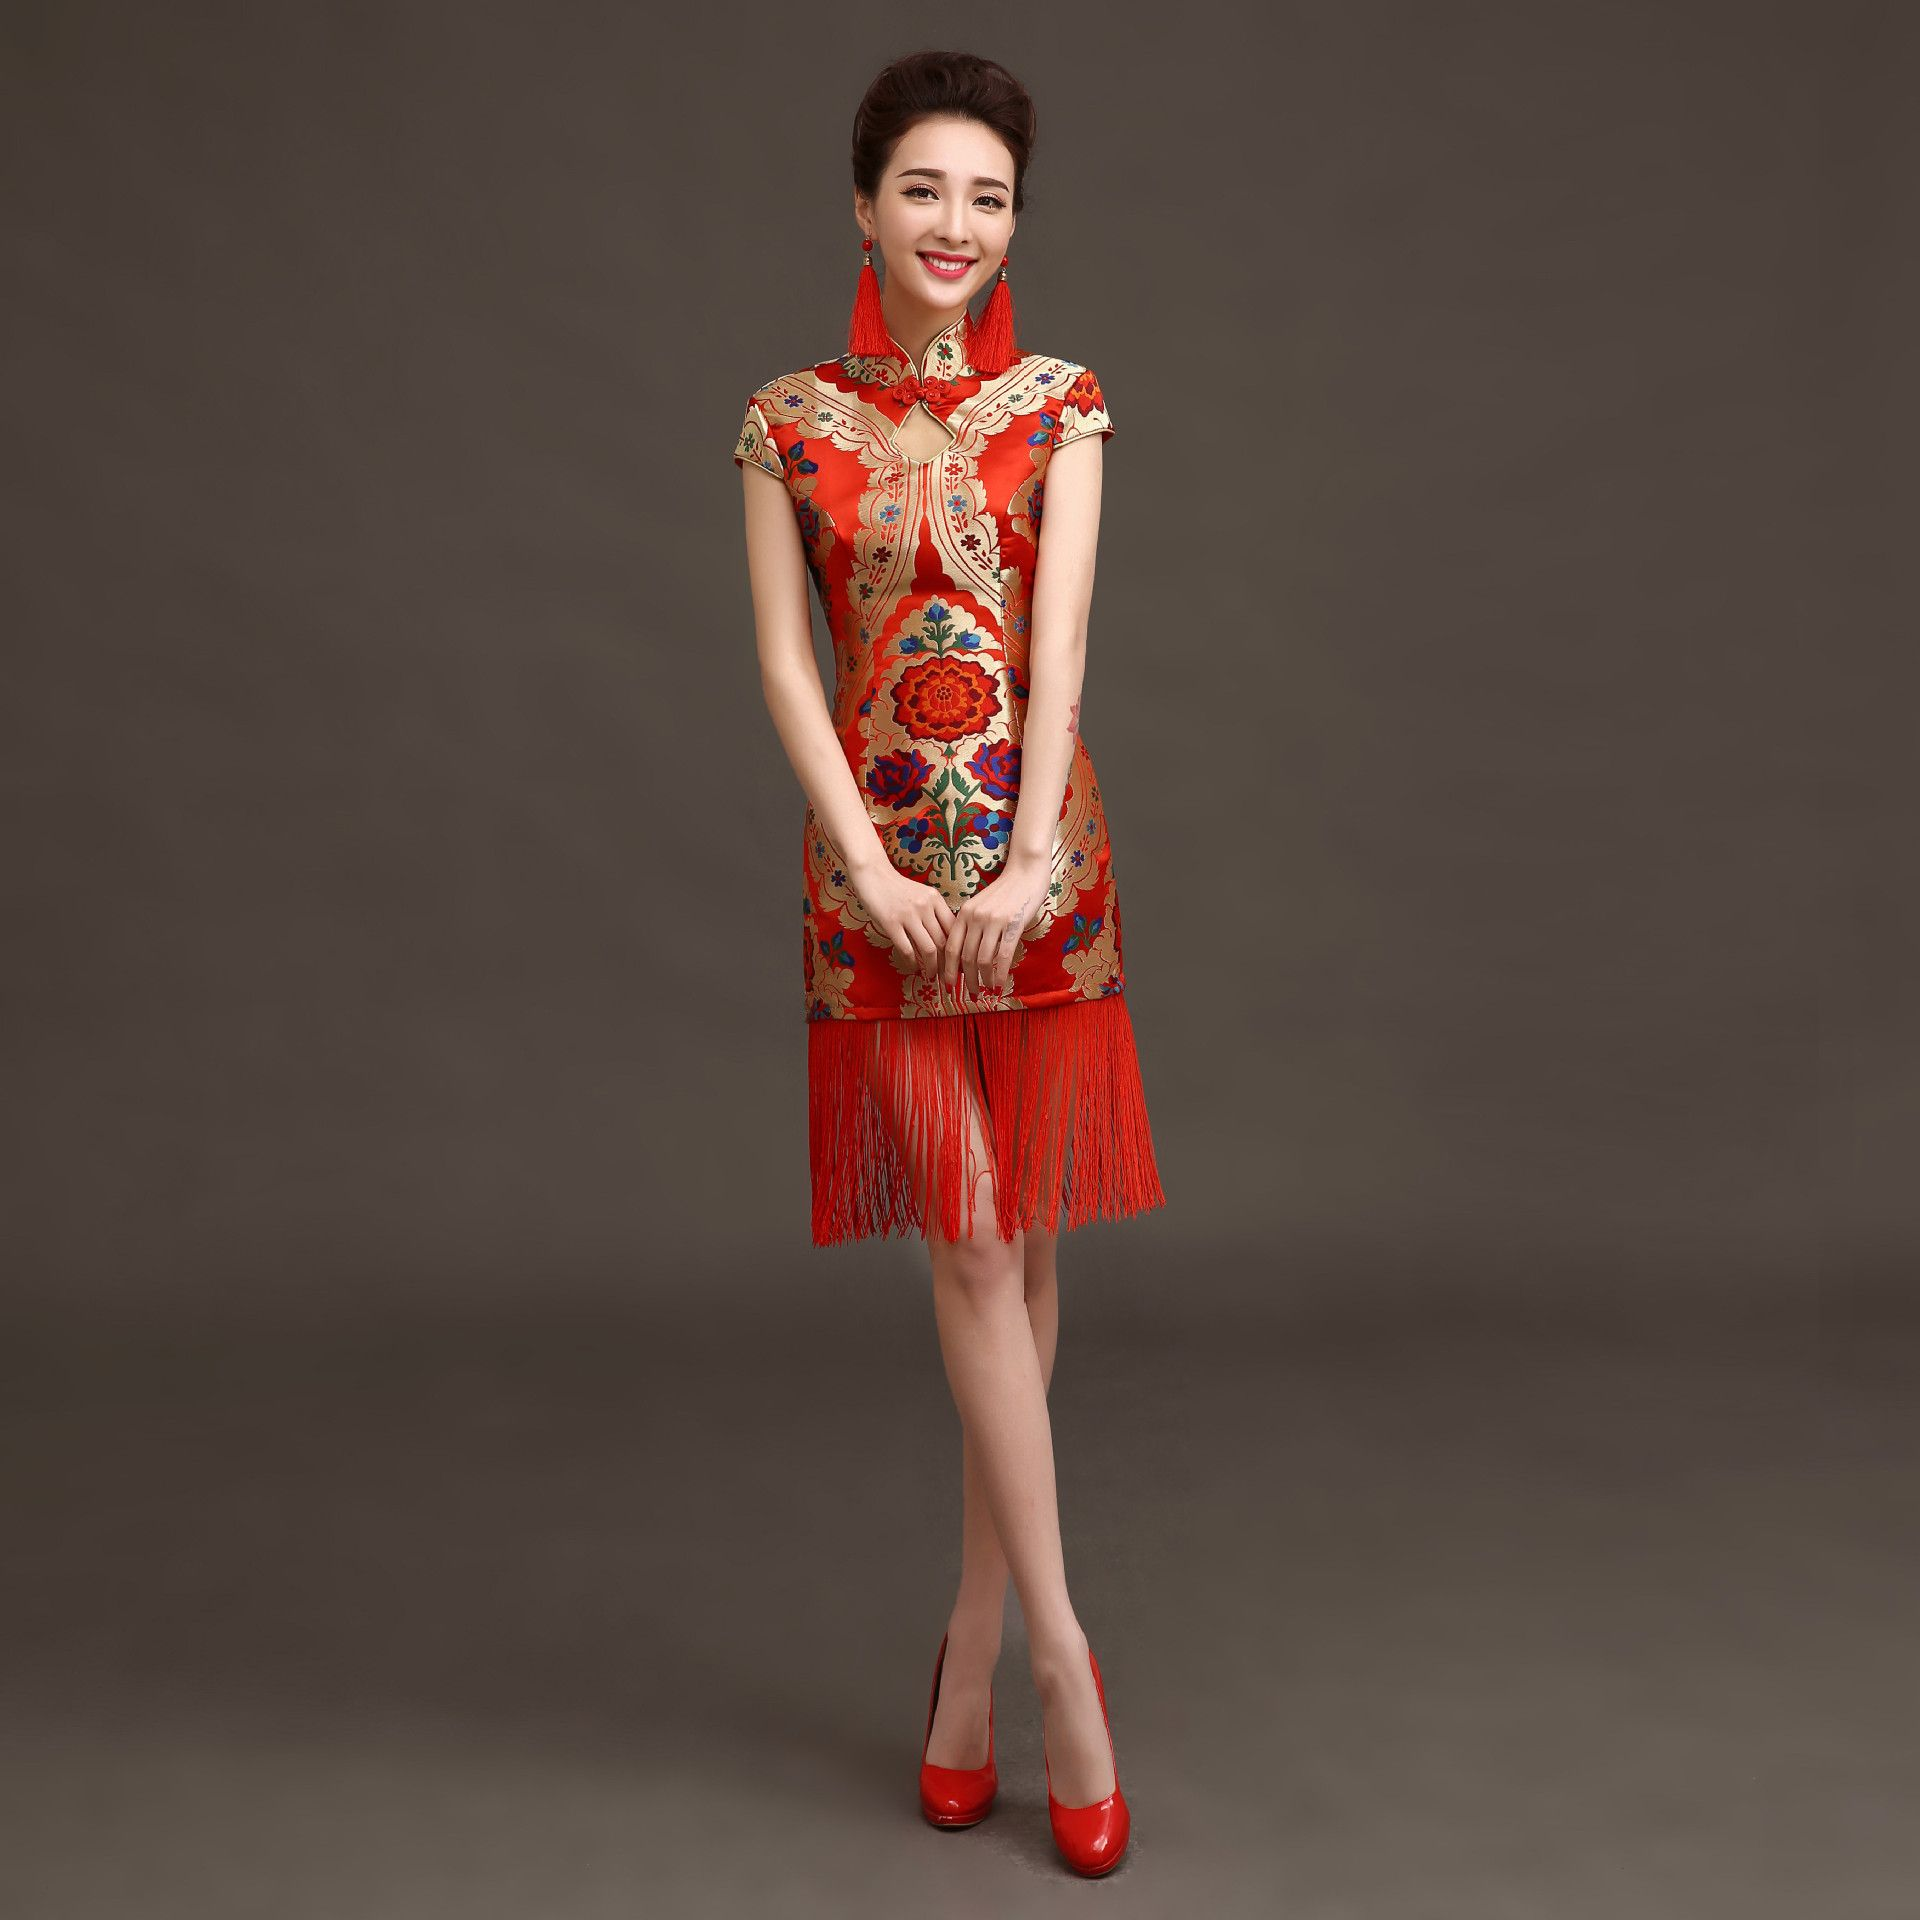 chinois robe qipao traditionnelle cheongsam de mari e courte rouge chine robes orientales qi pao. Black Bedroom Furniture Sets. Home Design Ideas